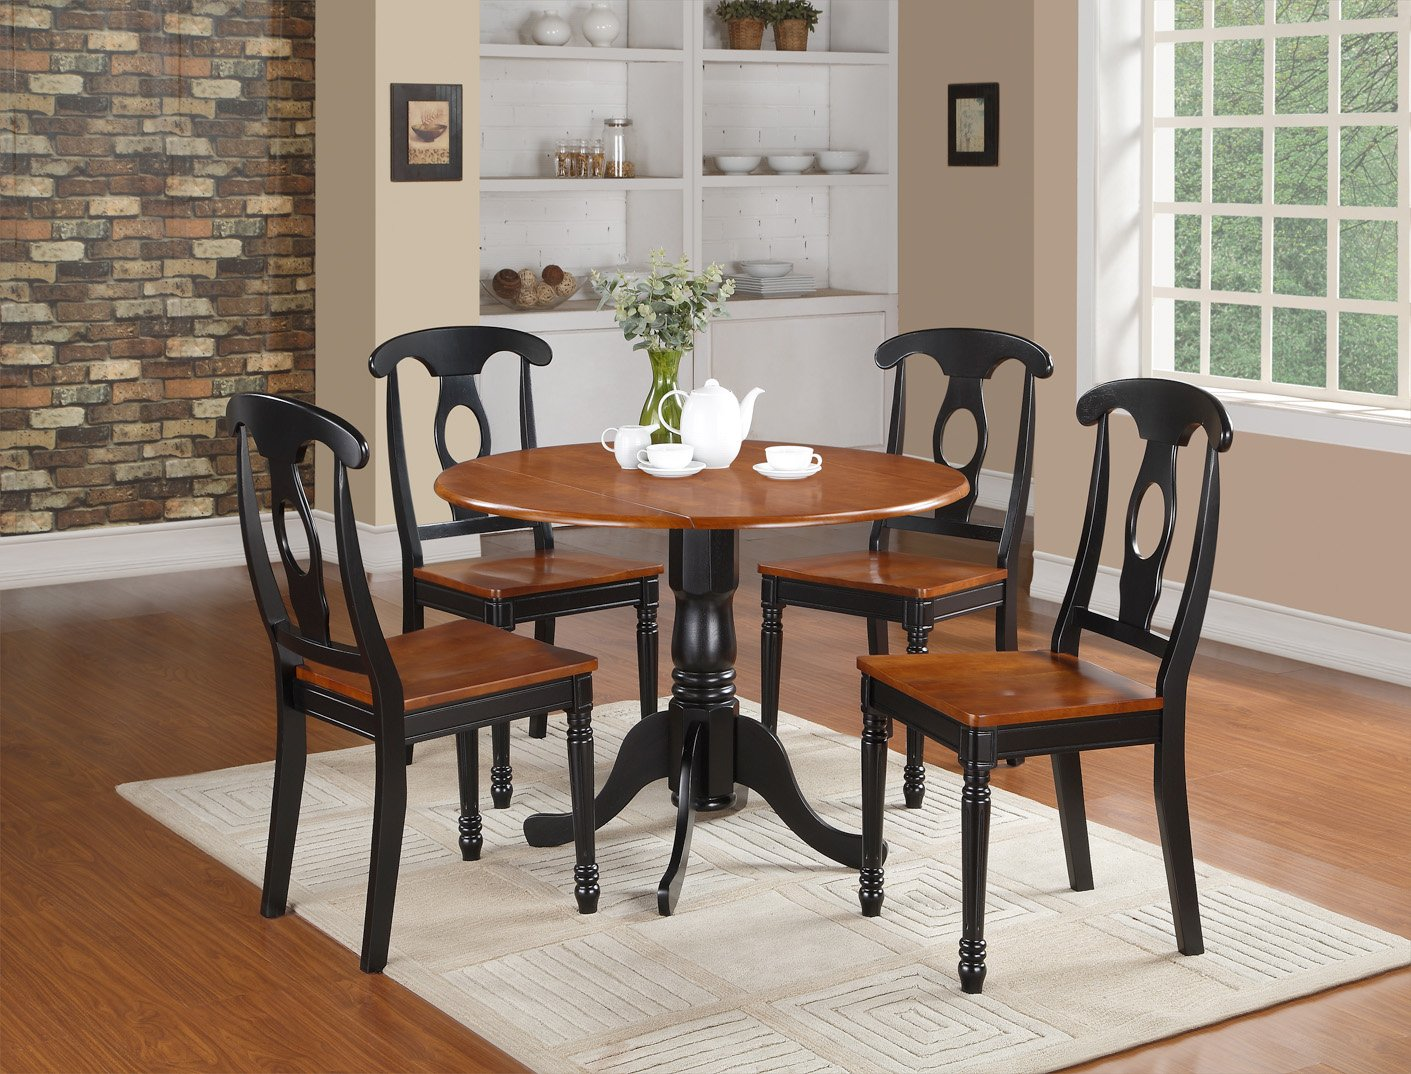 5pc Dublin Round Table W 2 Drop Leaves 4 Kenley Wood Seat